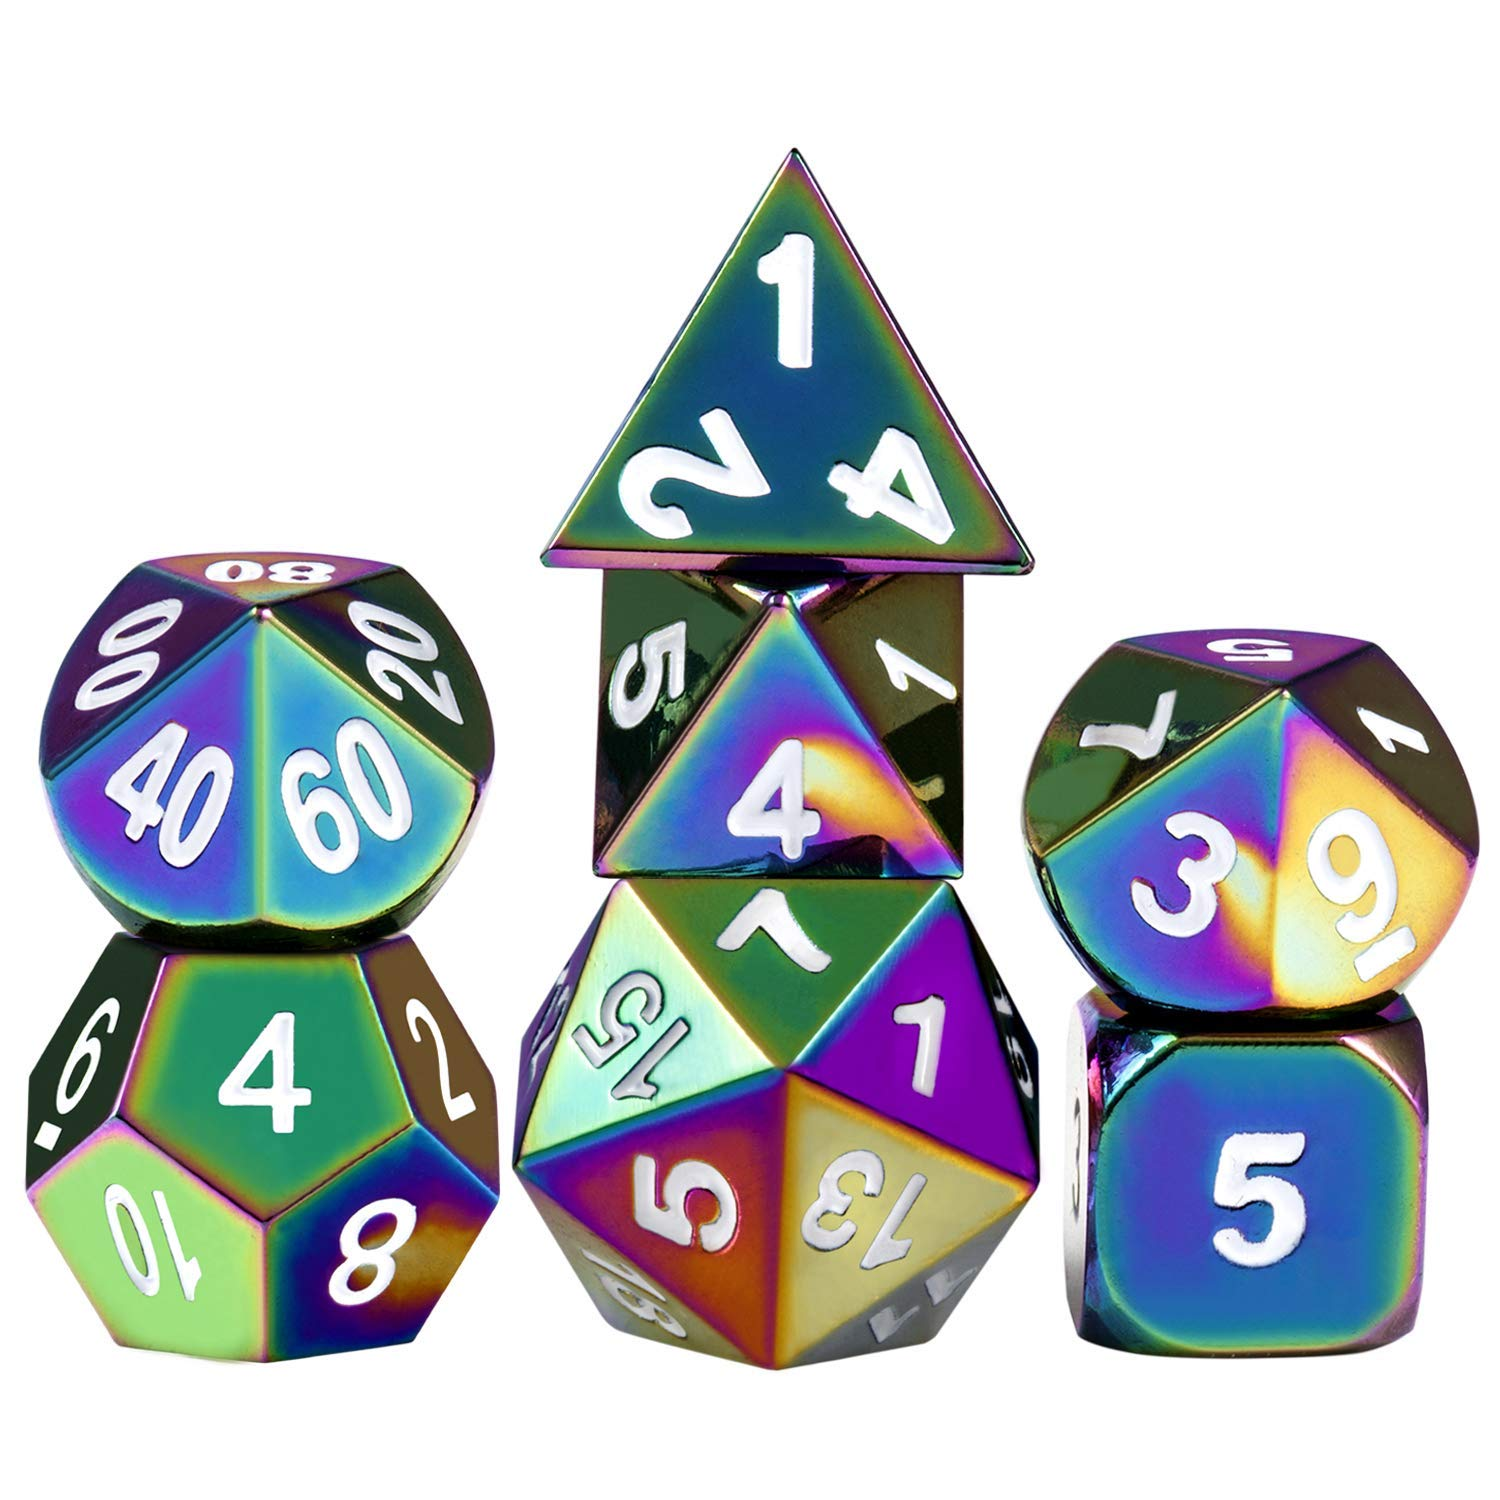 Here to fulfill all of your nerdy needs is this  set of seven Dungeons & Dragons dice . This is something I honestly will probably never need or use, but since I couldn't find a set of regular six-sided dice I wanted to share this anyway.